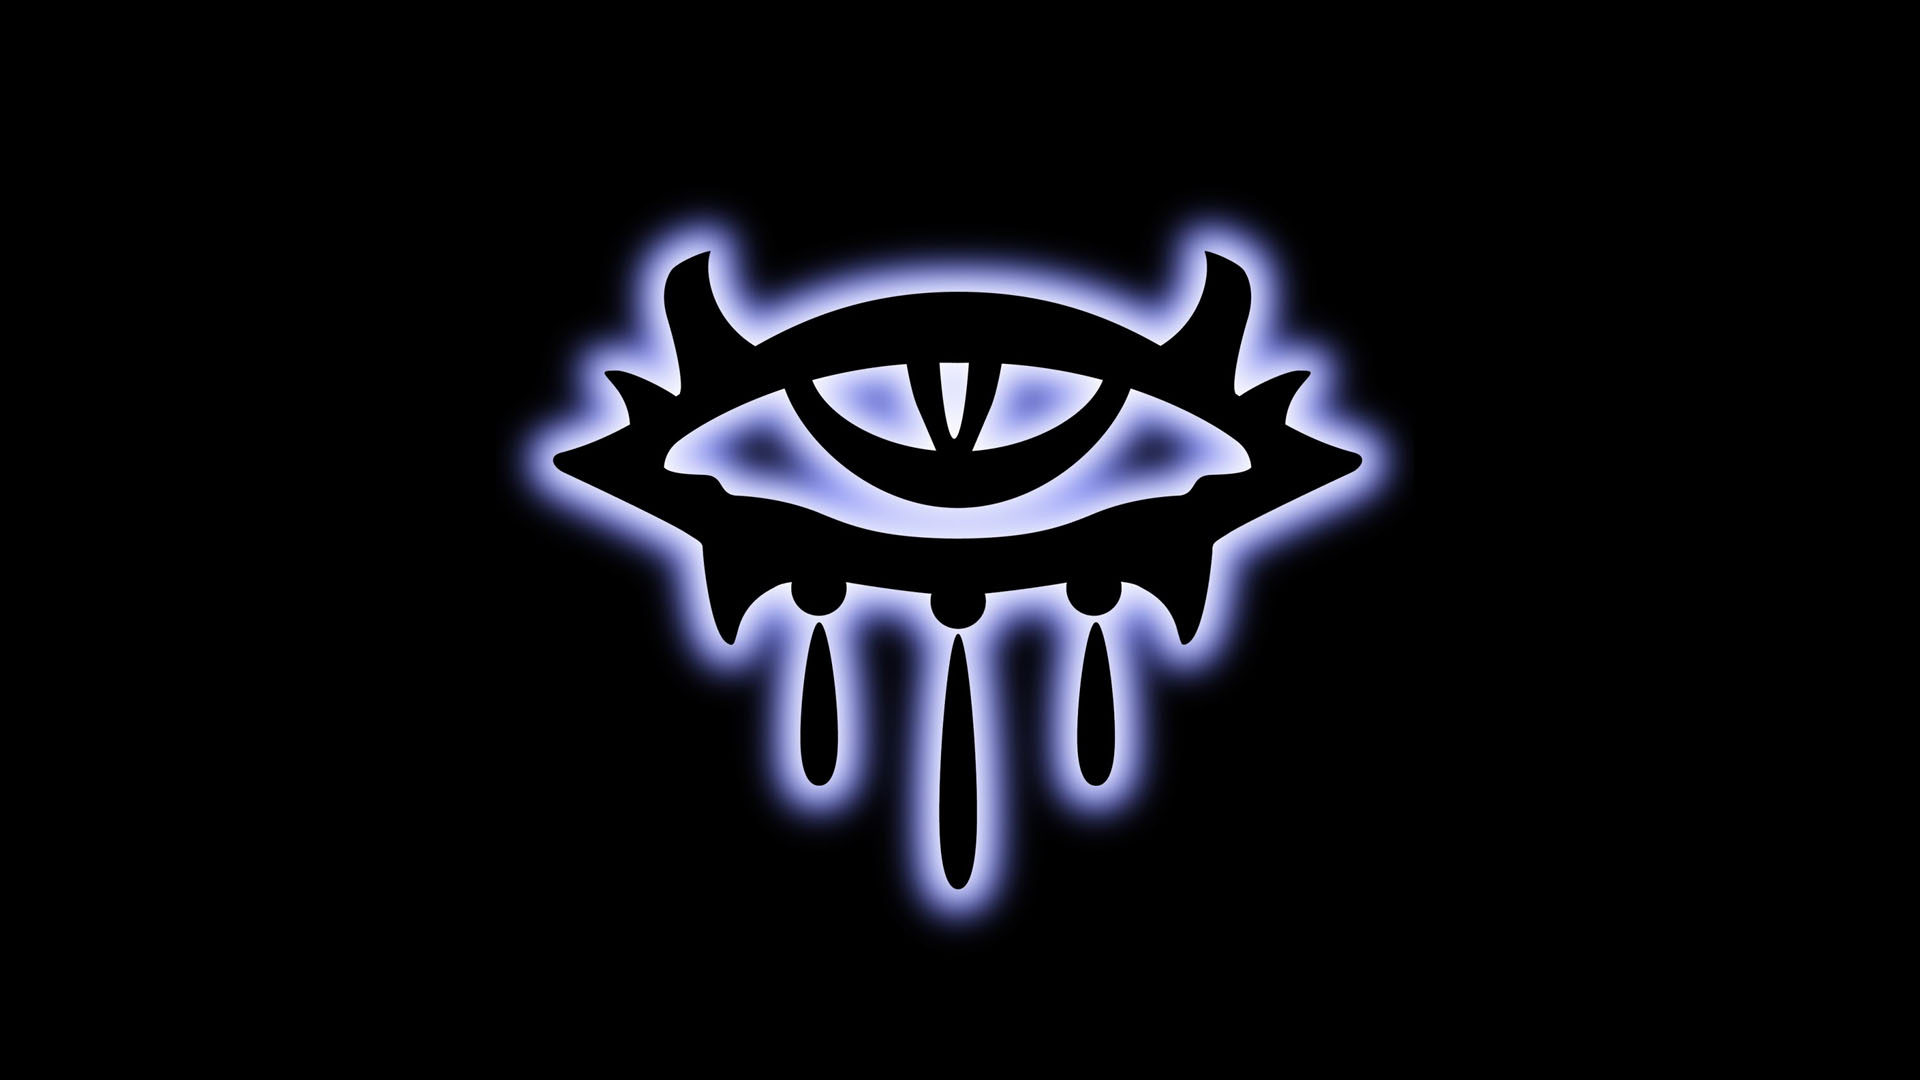 Neverwinter Nights Nwn Eye Logo